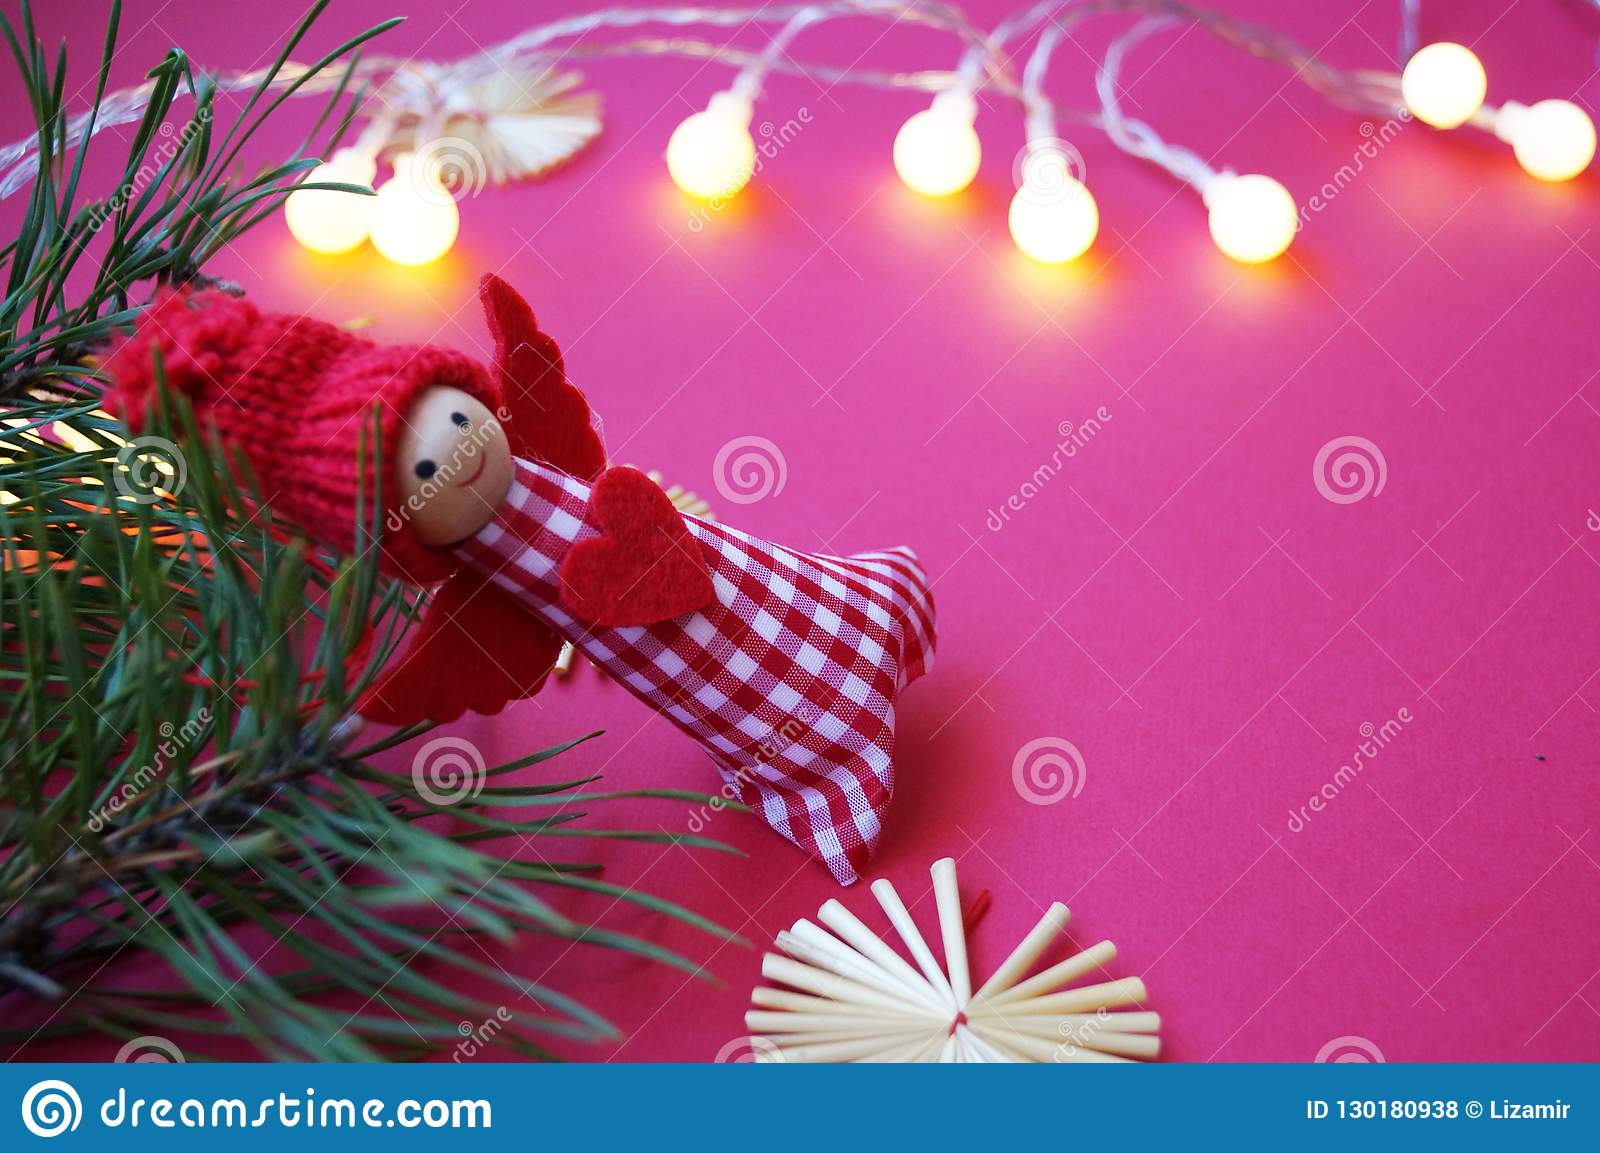 Angels Christmas Background.Happy New Year Background Christmas Angel On A Pine Branch